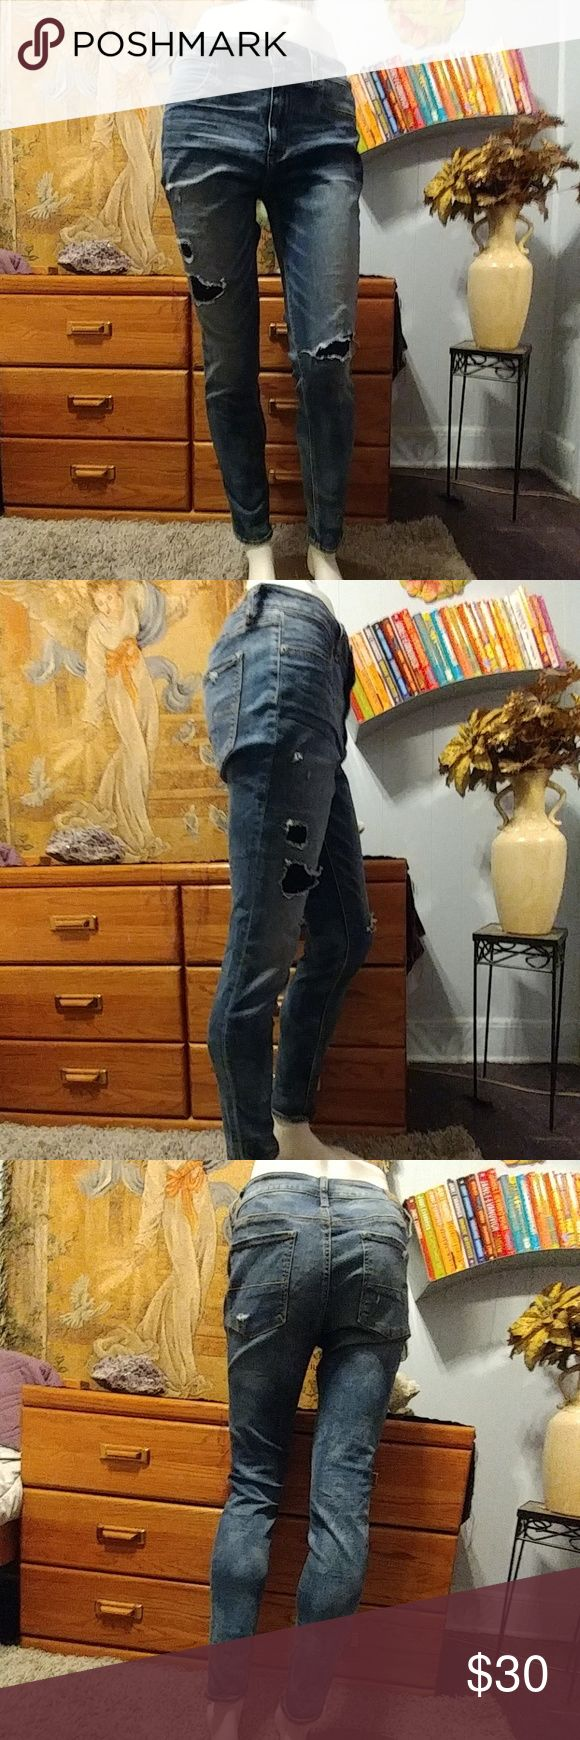 ?NWOT?American Eagle High Rise Jeggins American Eagle High Rise Jeggins.  ?Super Stretch ?Very soft Material ?Distressed with patched ?Front pockets look like pickets but Do Not Open.  ?Standard Length  ?No Lowballing ?No Trades ?Serious Buyers Please American Eagle Outfitters Pants